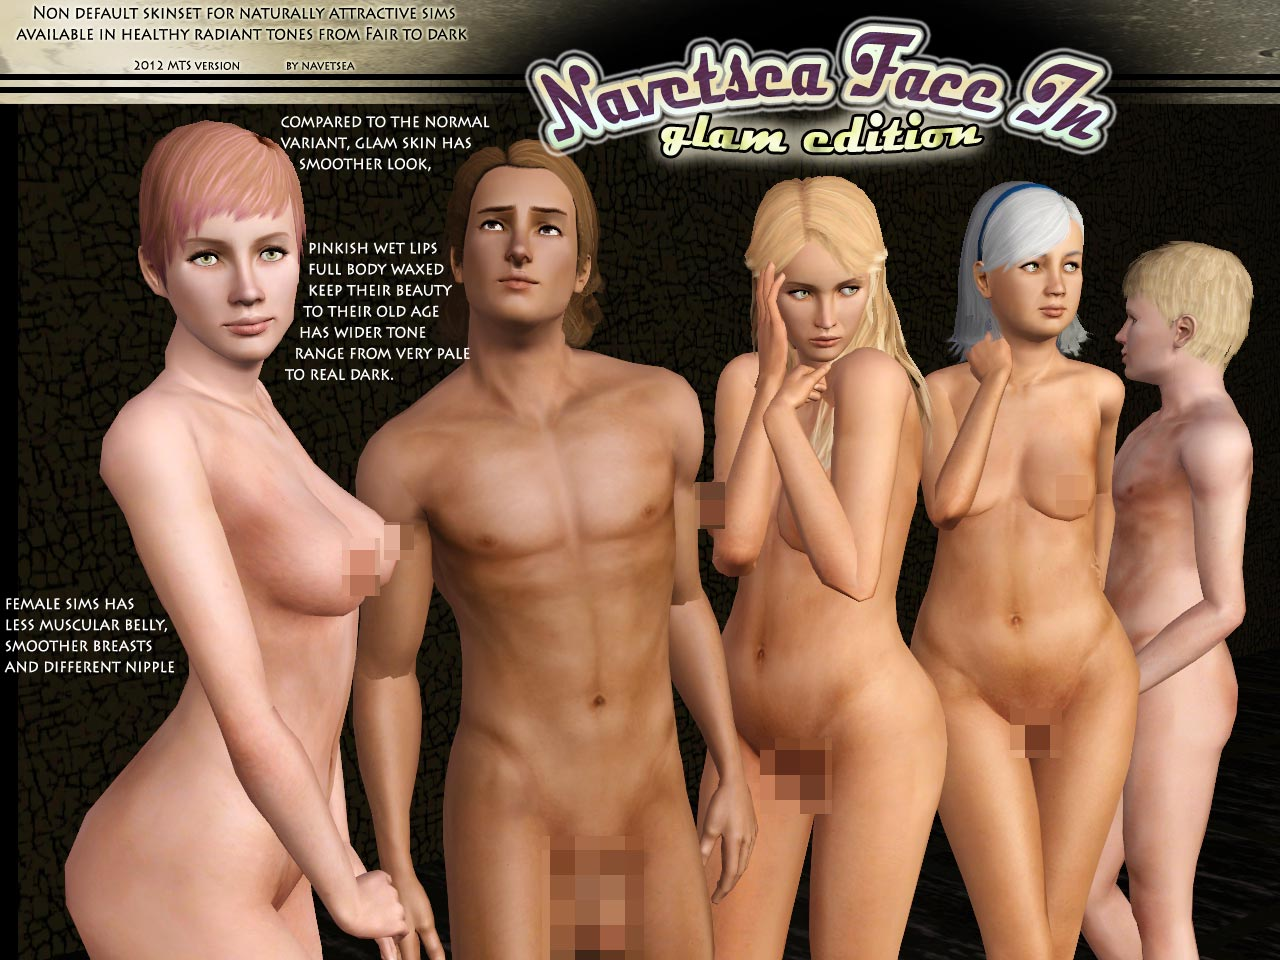 Sims 3 anal mod adult streaming